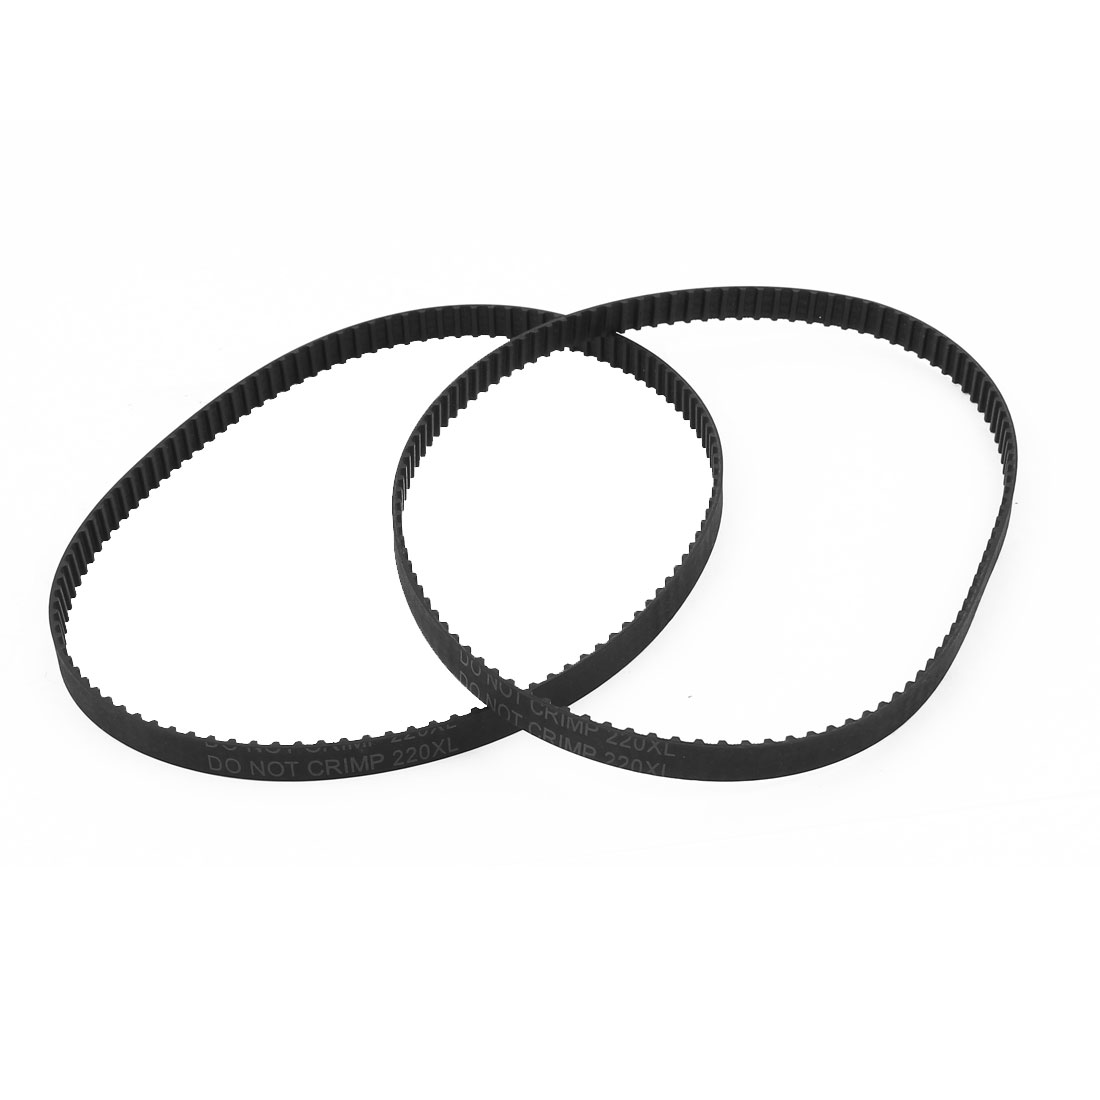 "2Pcs 220XL 22"" Girth 5.08mm Pitch 110-Teeth Black Rubber Industrial Synchro Machine Synchronous Timing Belt"